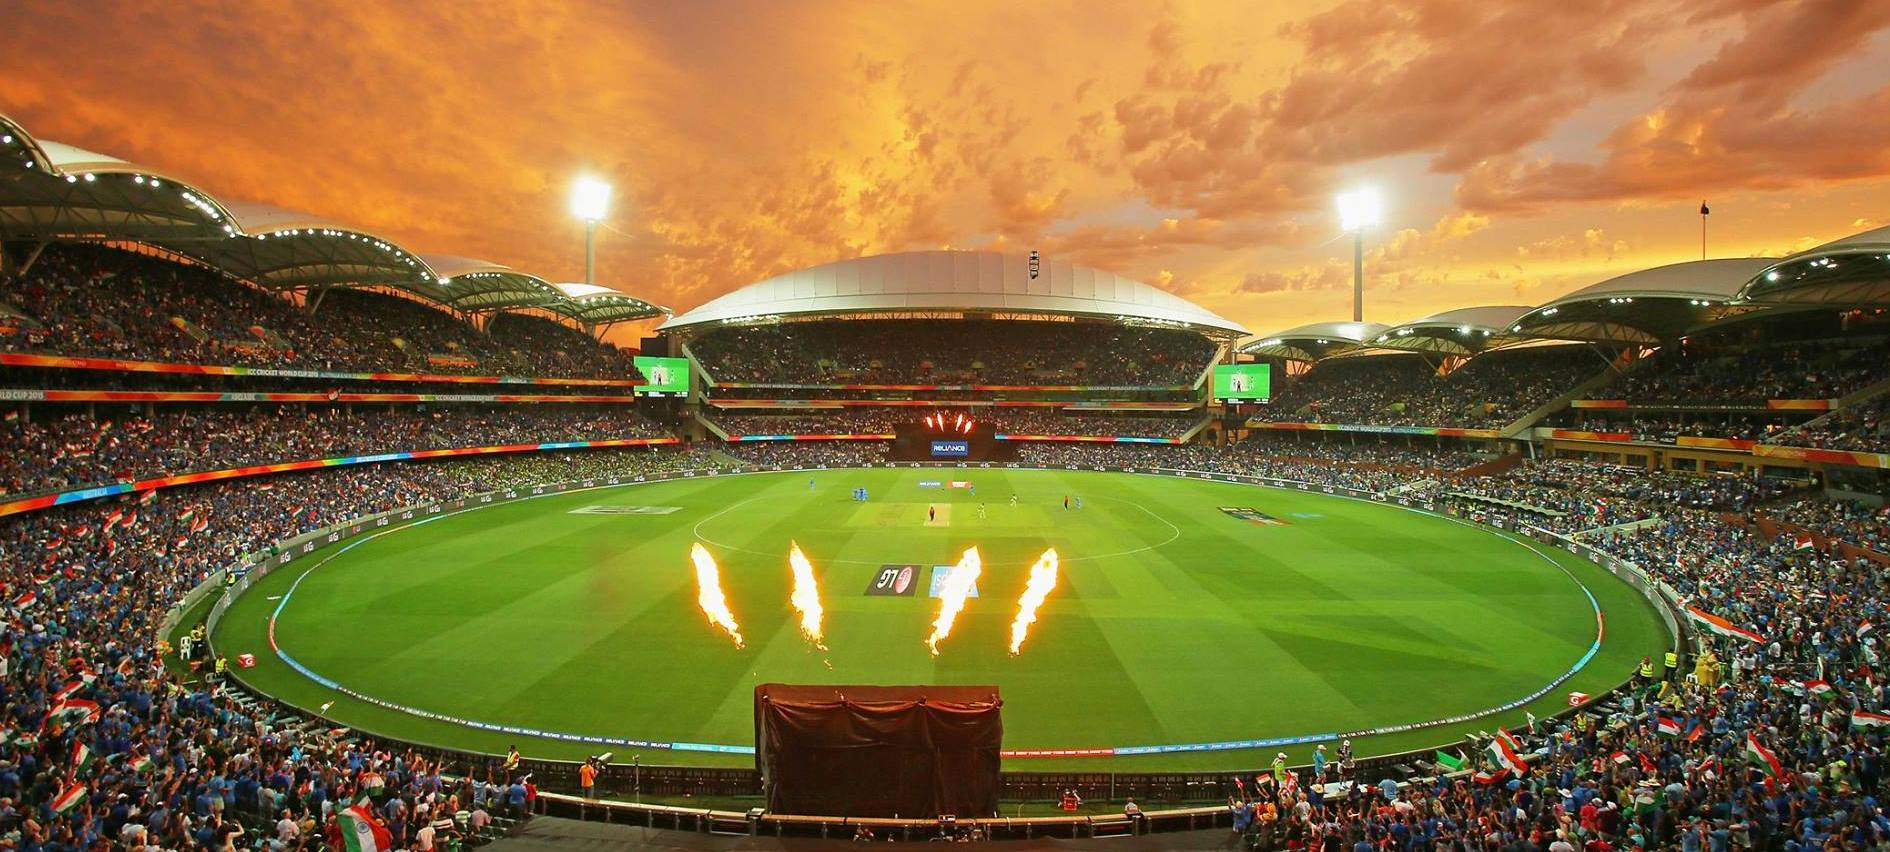 Adelaide Oval night